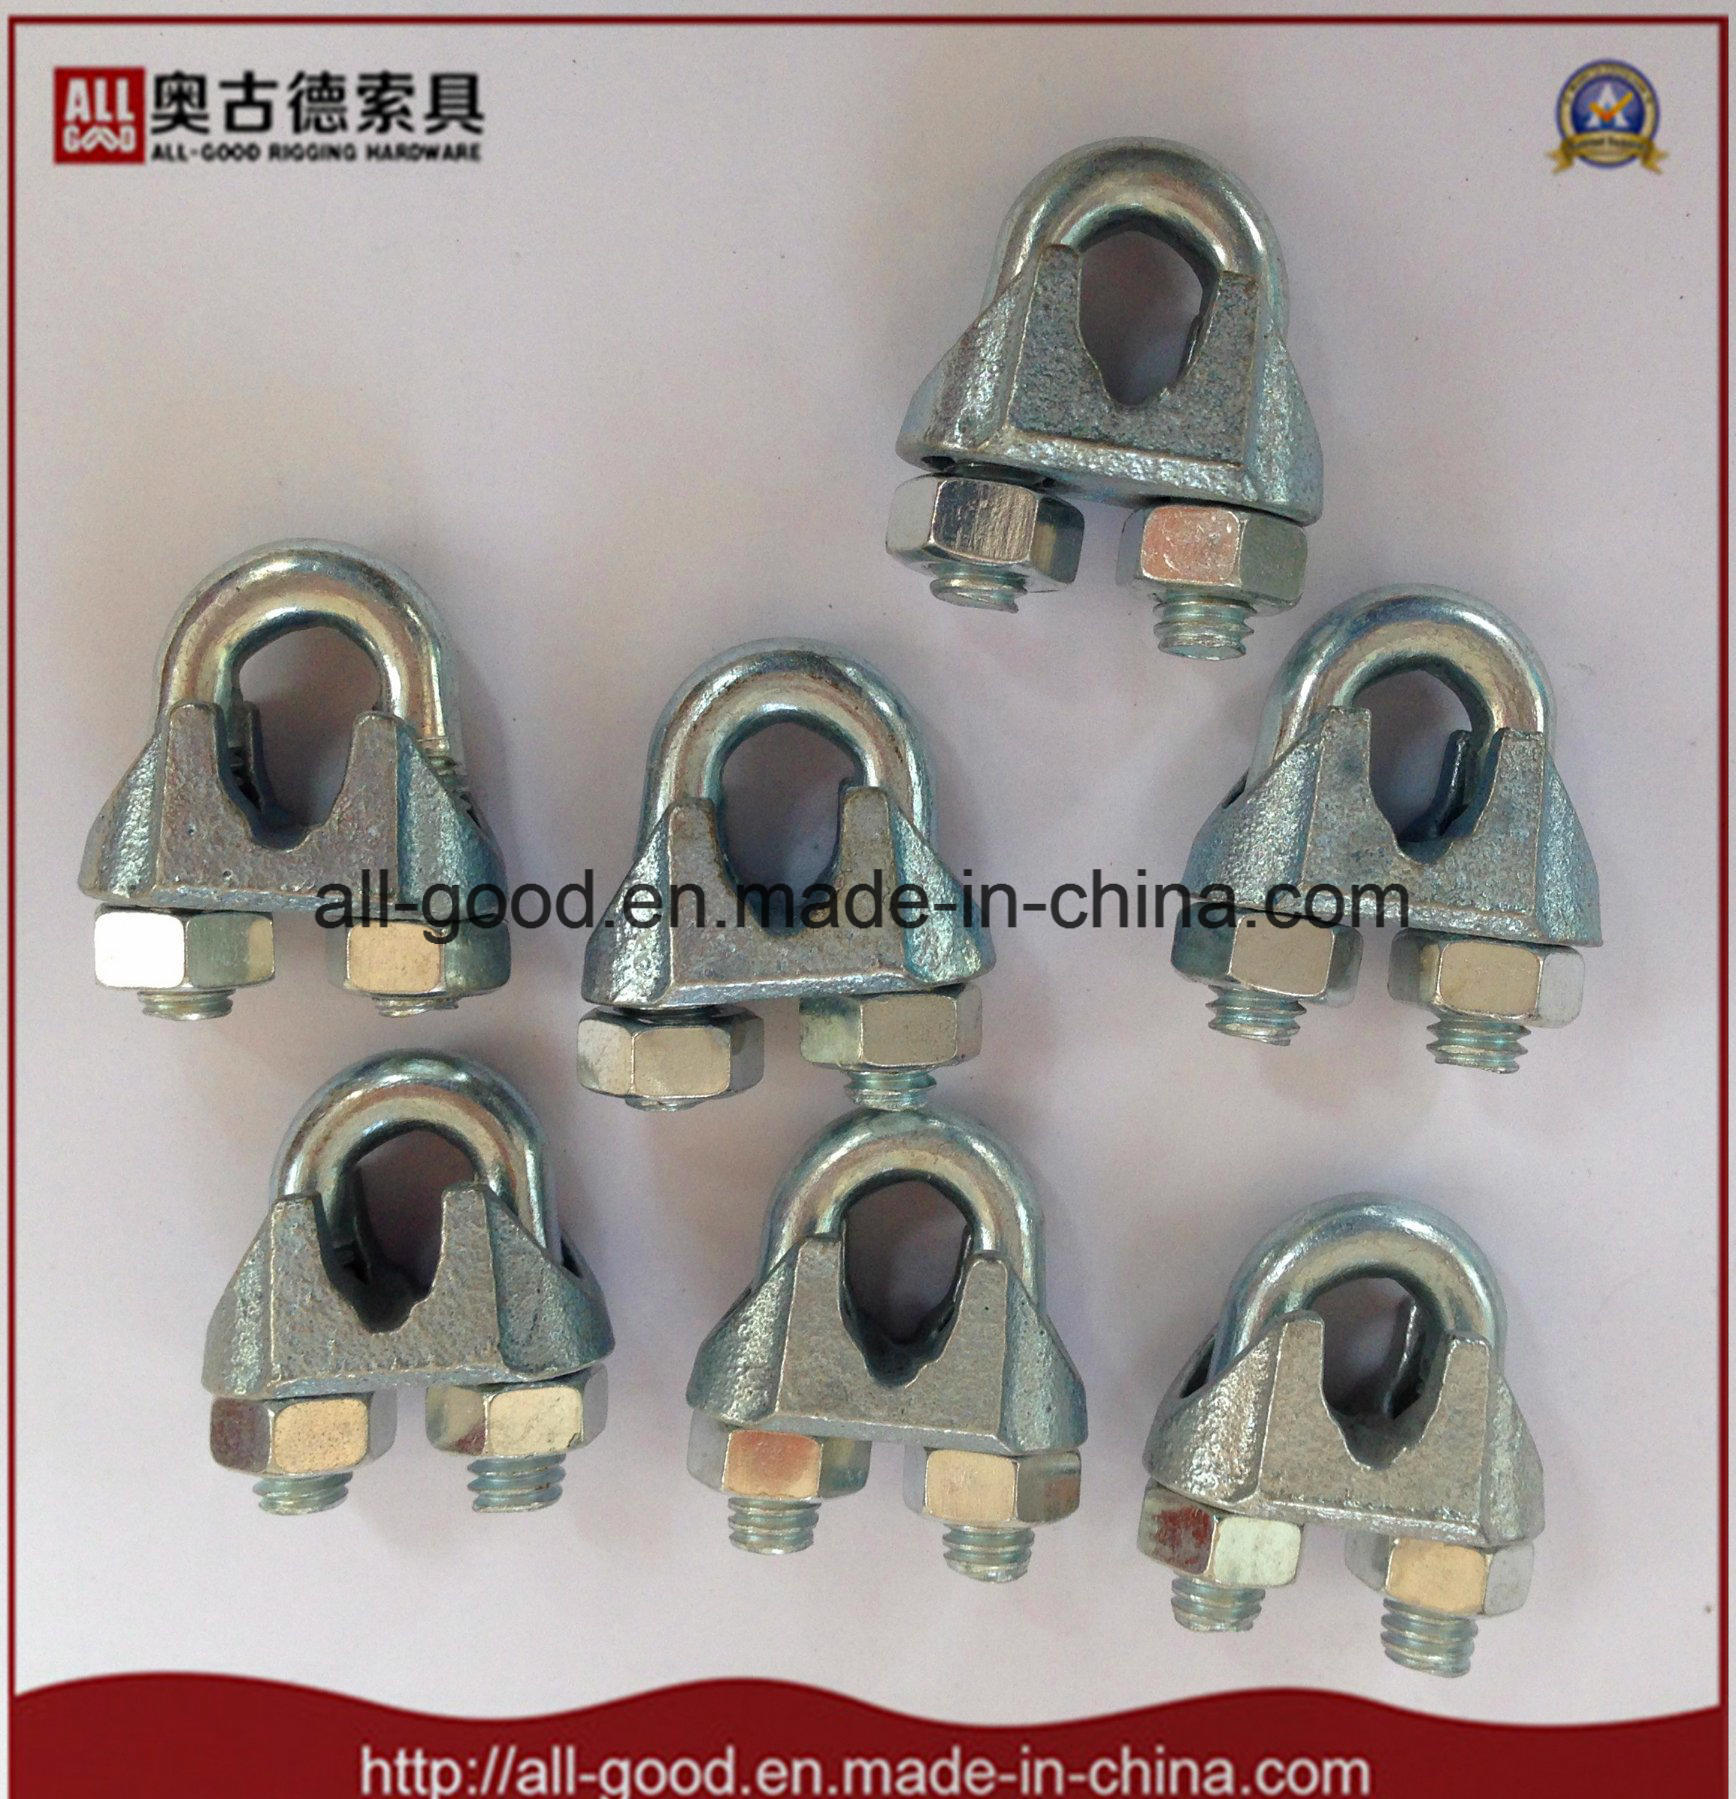 China Rigging Hardware Us Type Malleable Wire Rope Clips - China ...